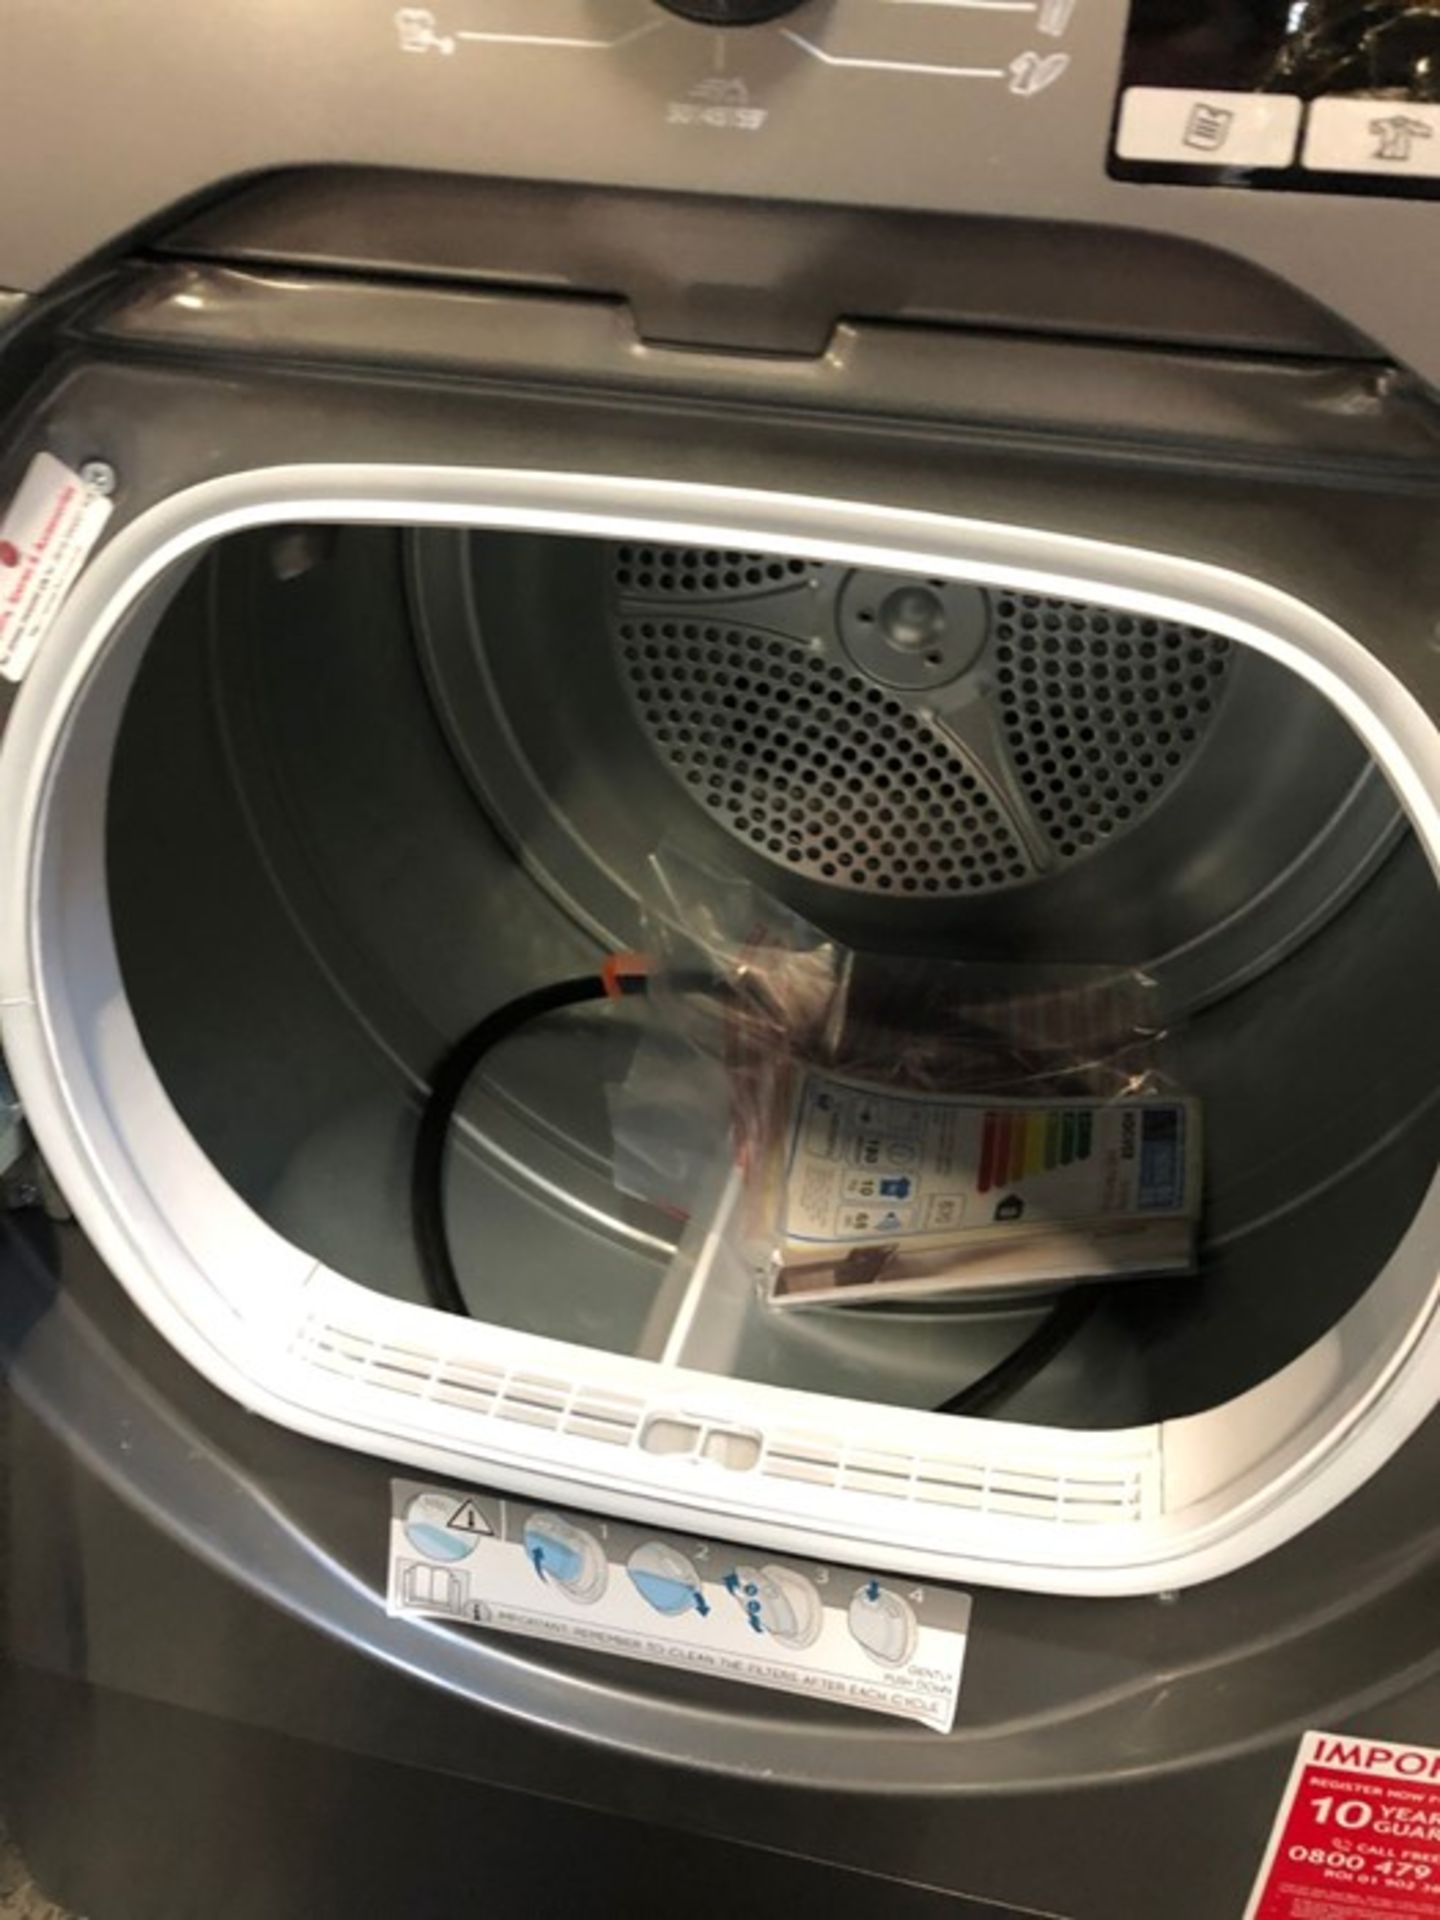 HOOVER CONDENSOR FREESTANDING TUMBLE DRYER DXO C10TCER-80 - Image 2 of 3